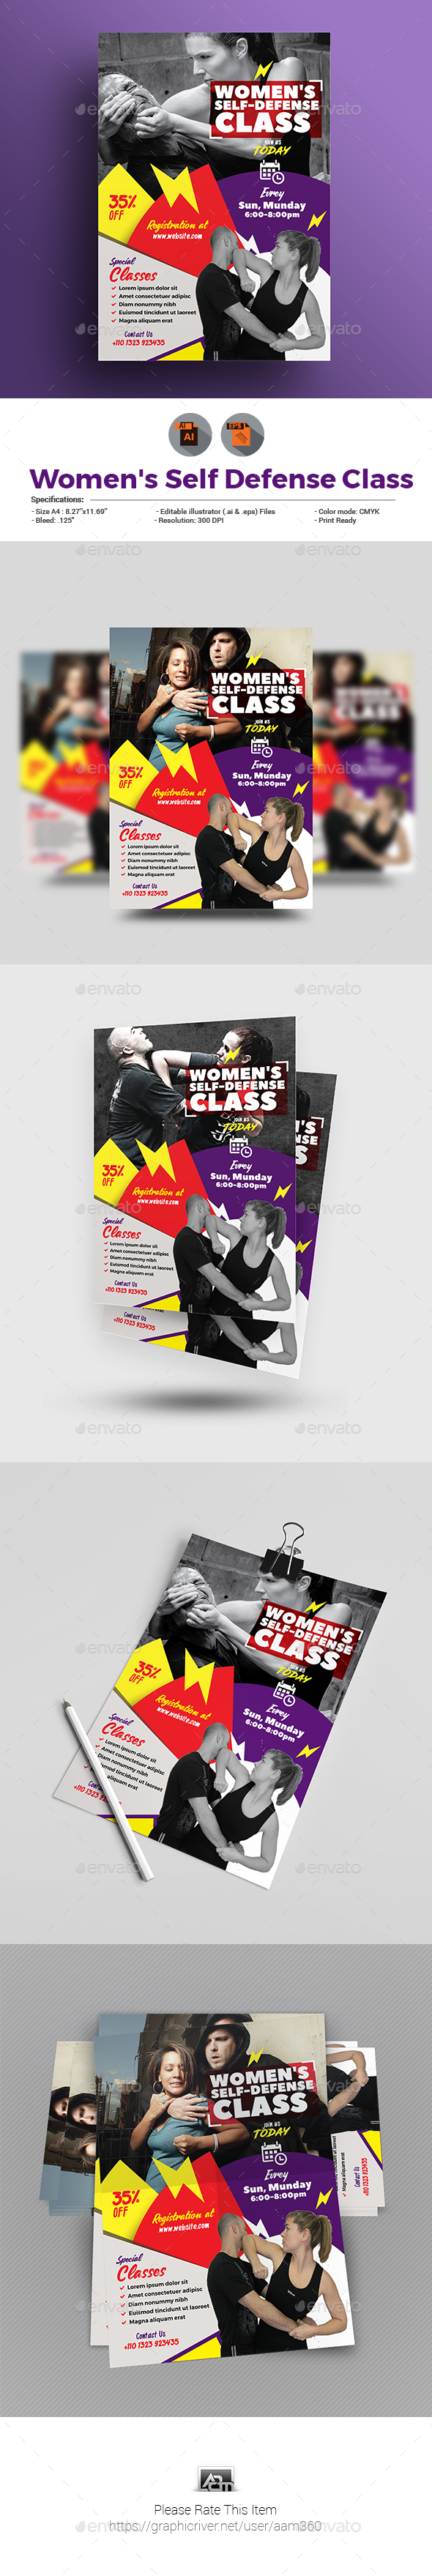 Women's Self Defense Class Flyer - Miscellaneous Print Templates